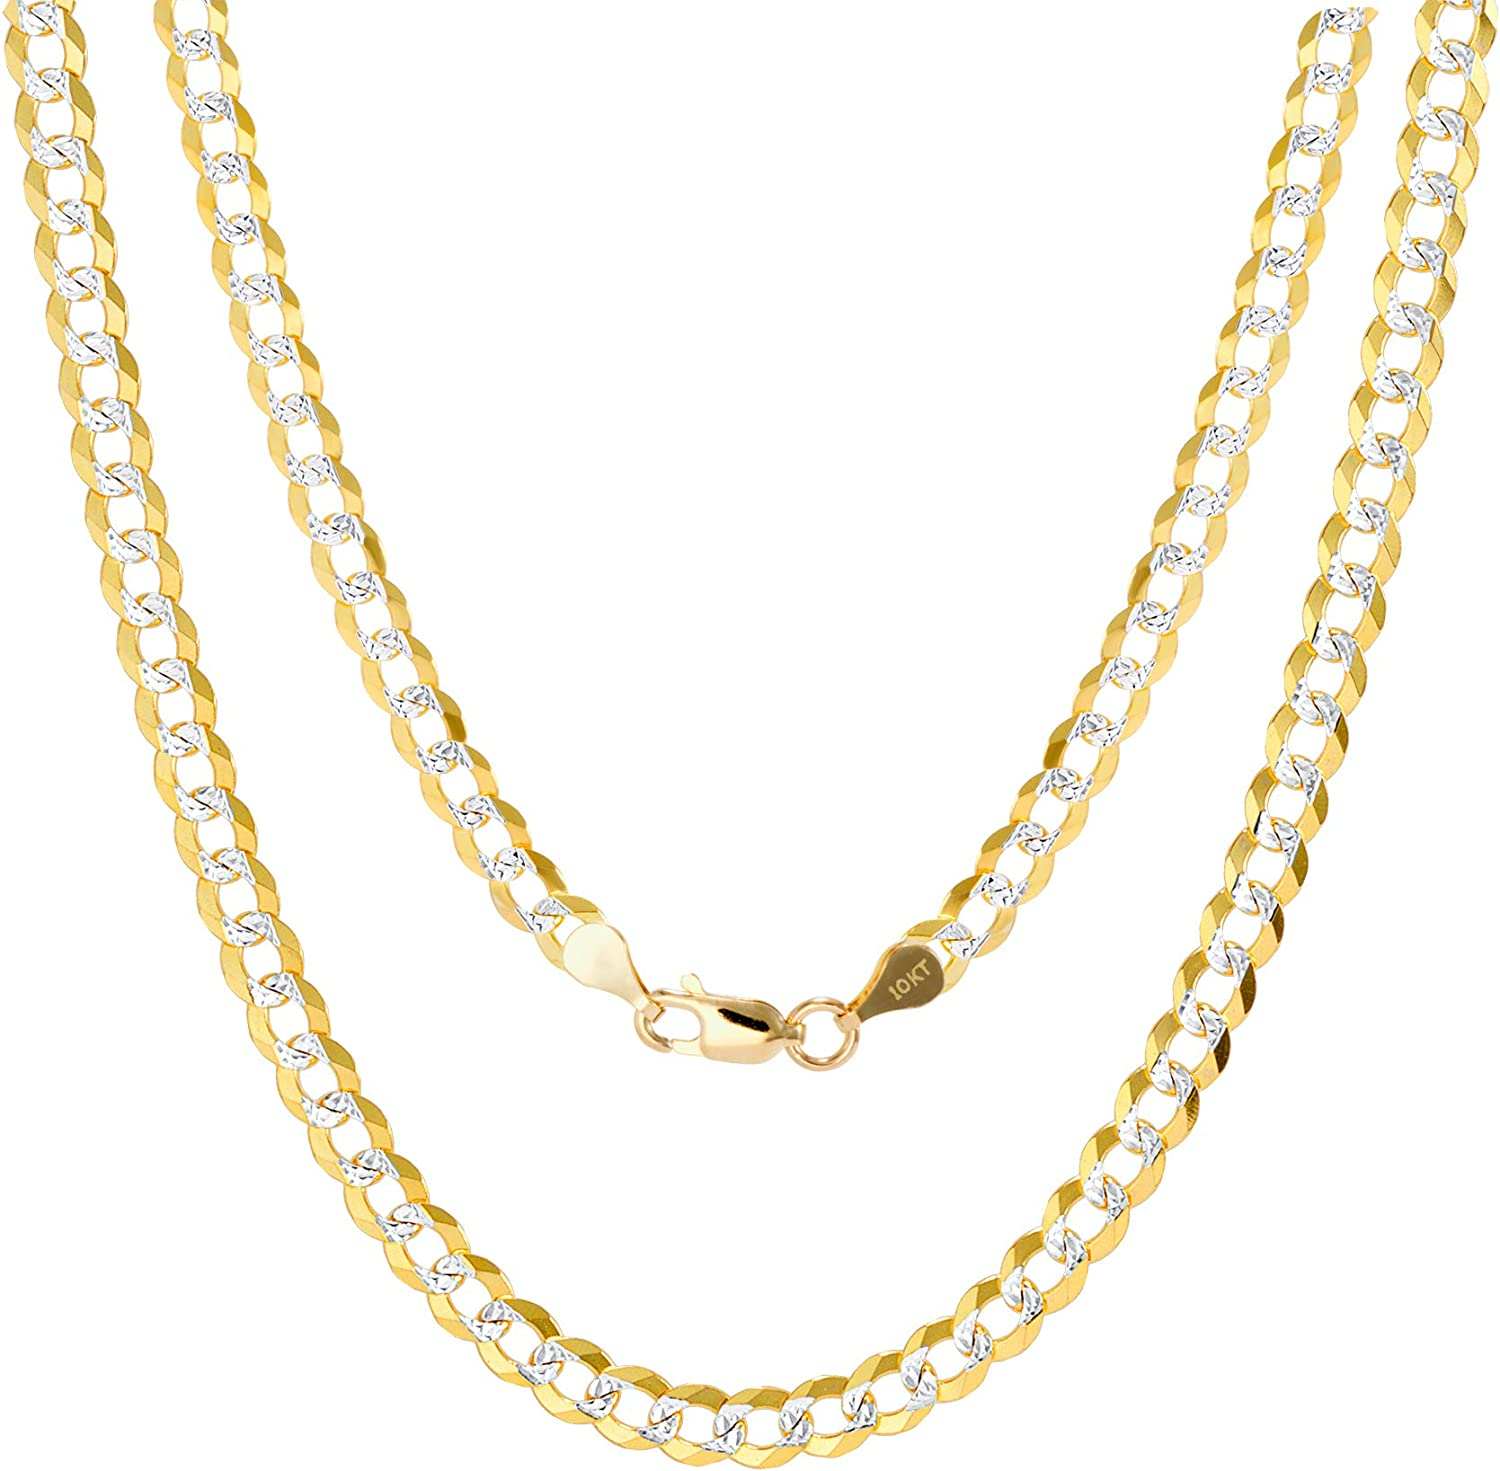 Nuragold 10k Yellow Gold Solid 5mm Cuban Chain Curb Link Diamond Cut Pave Two Tone Pendant Necklace, Mens Womens Lobster Lock 16